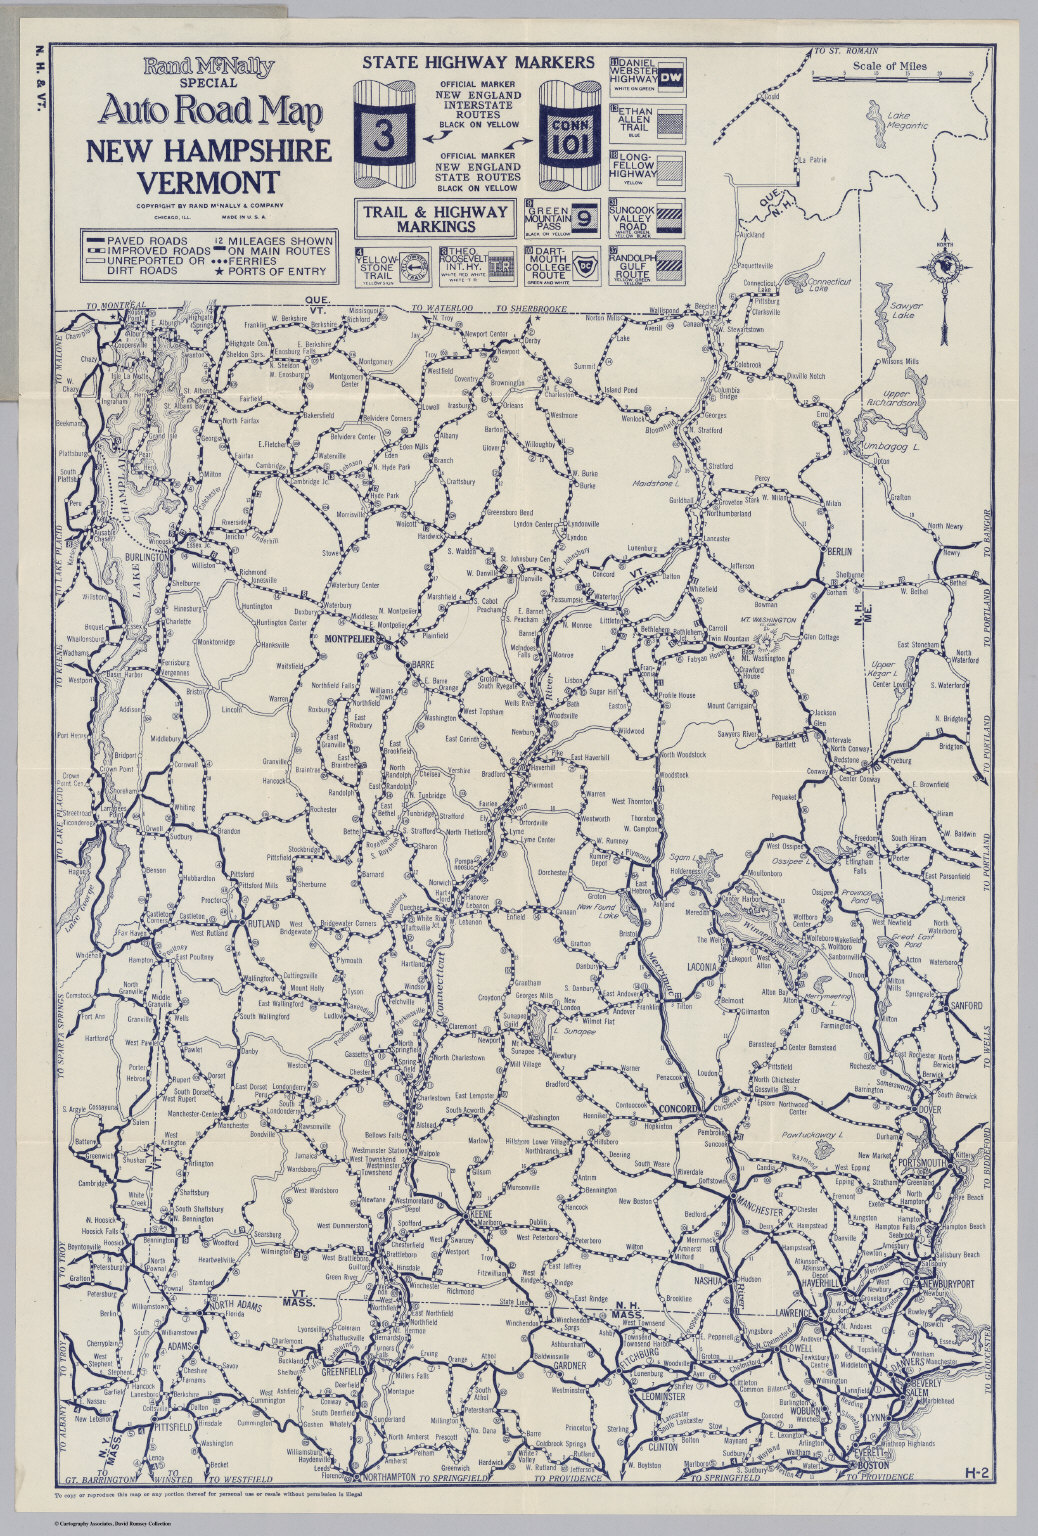 Auto Road Map New Hampshire Vermont David Rumsey Historical Map - Road map of nh